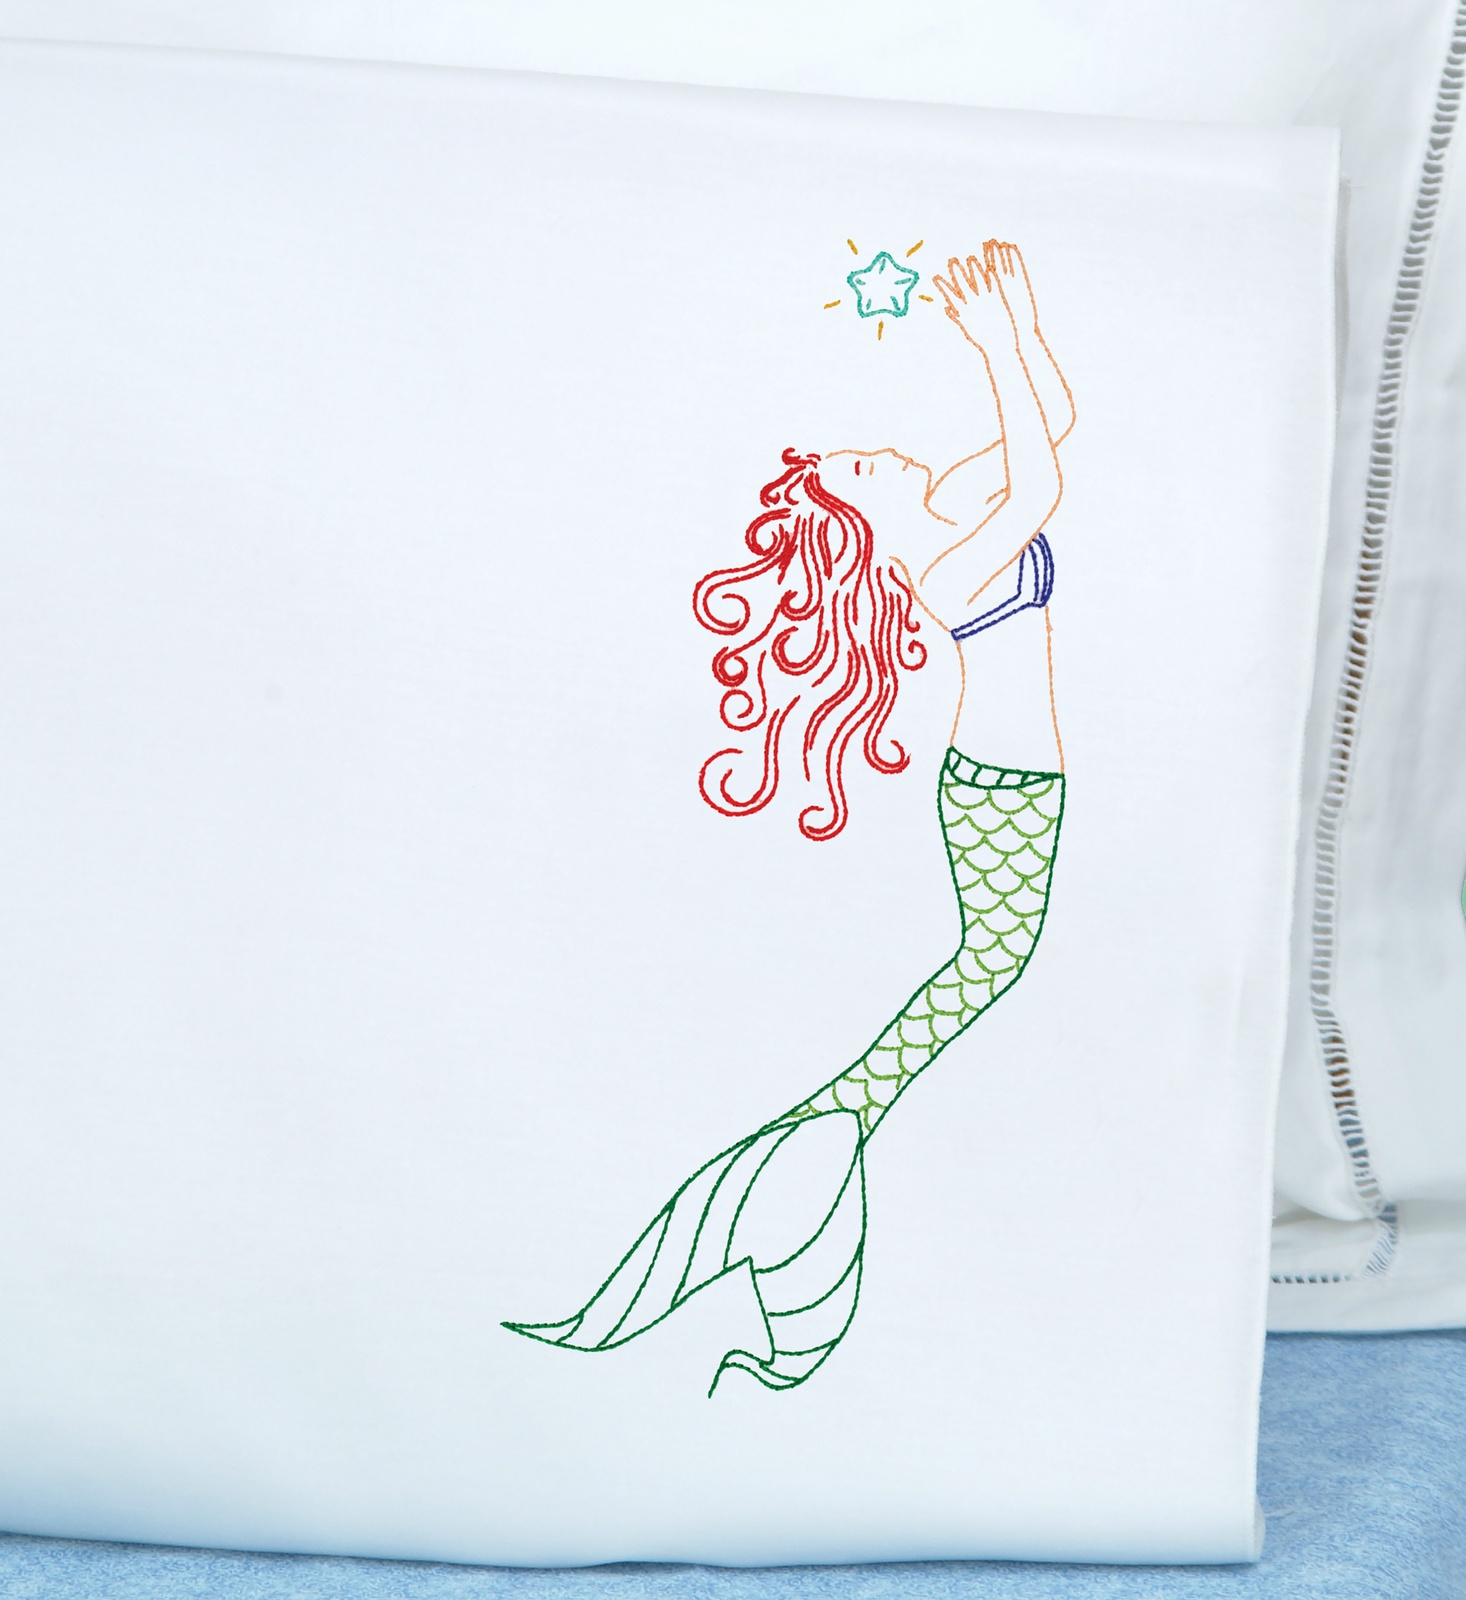 Primary image for Jack Dempsey Stamped Pillowcases W/White Perle Edge 2/Pkg-Mermaid